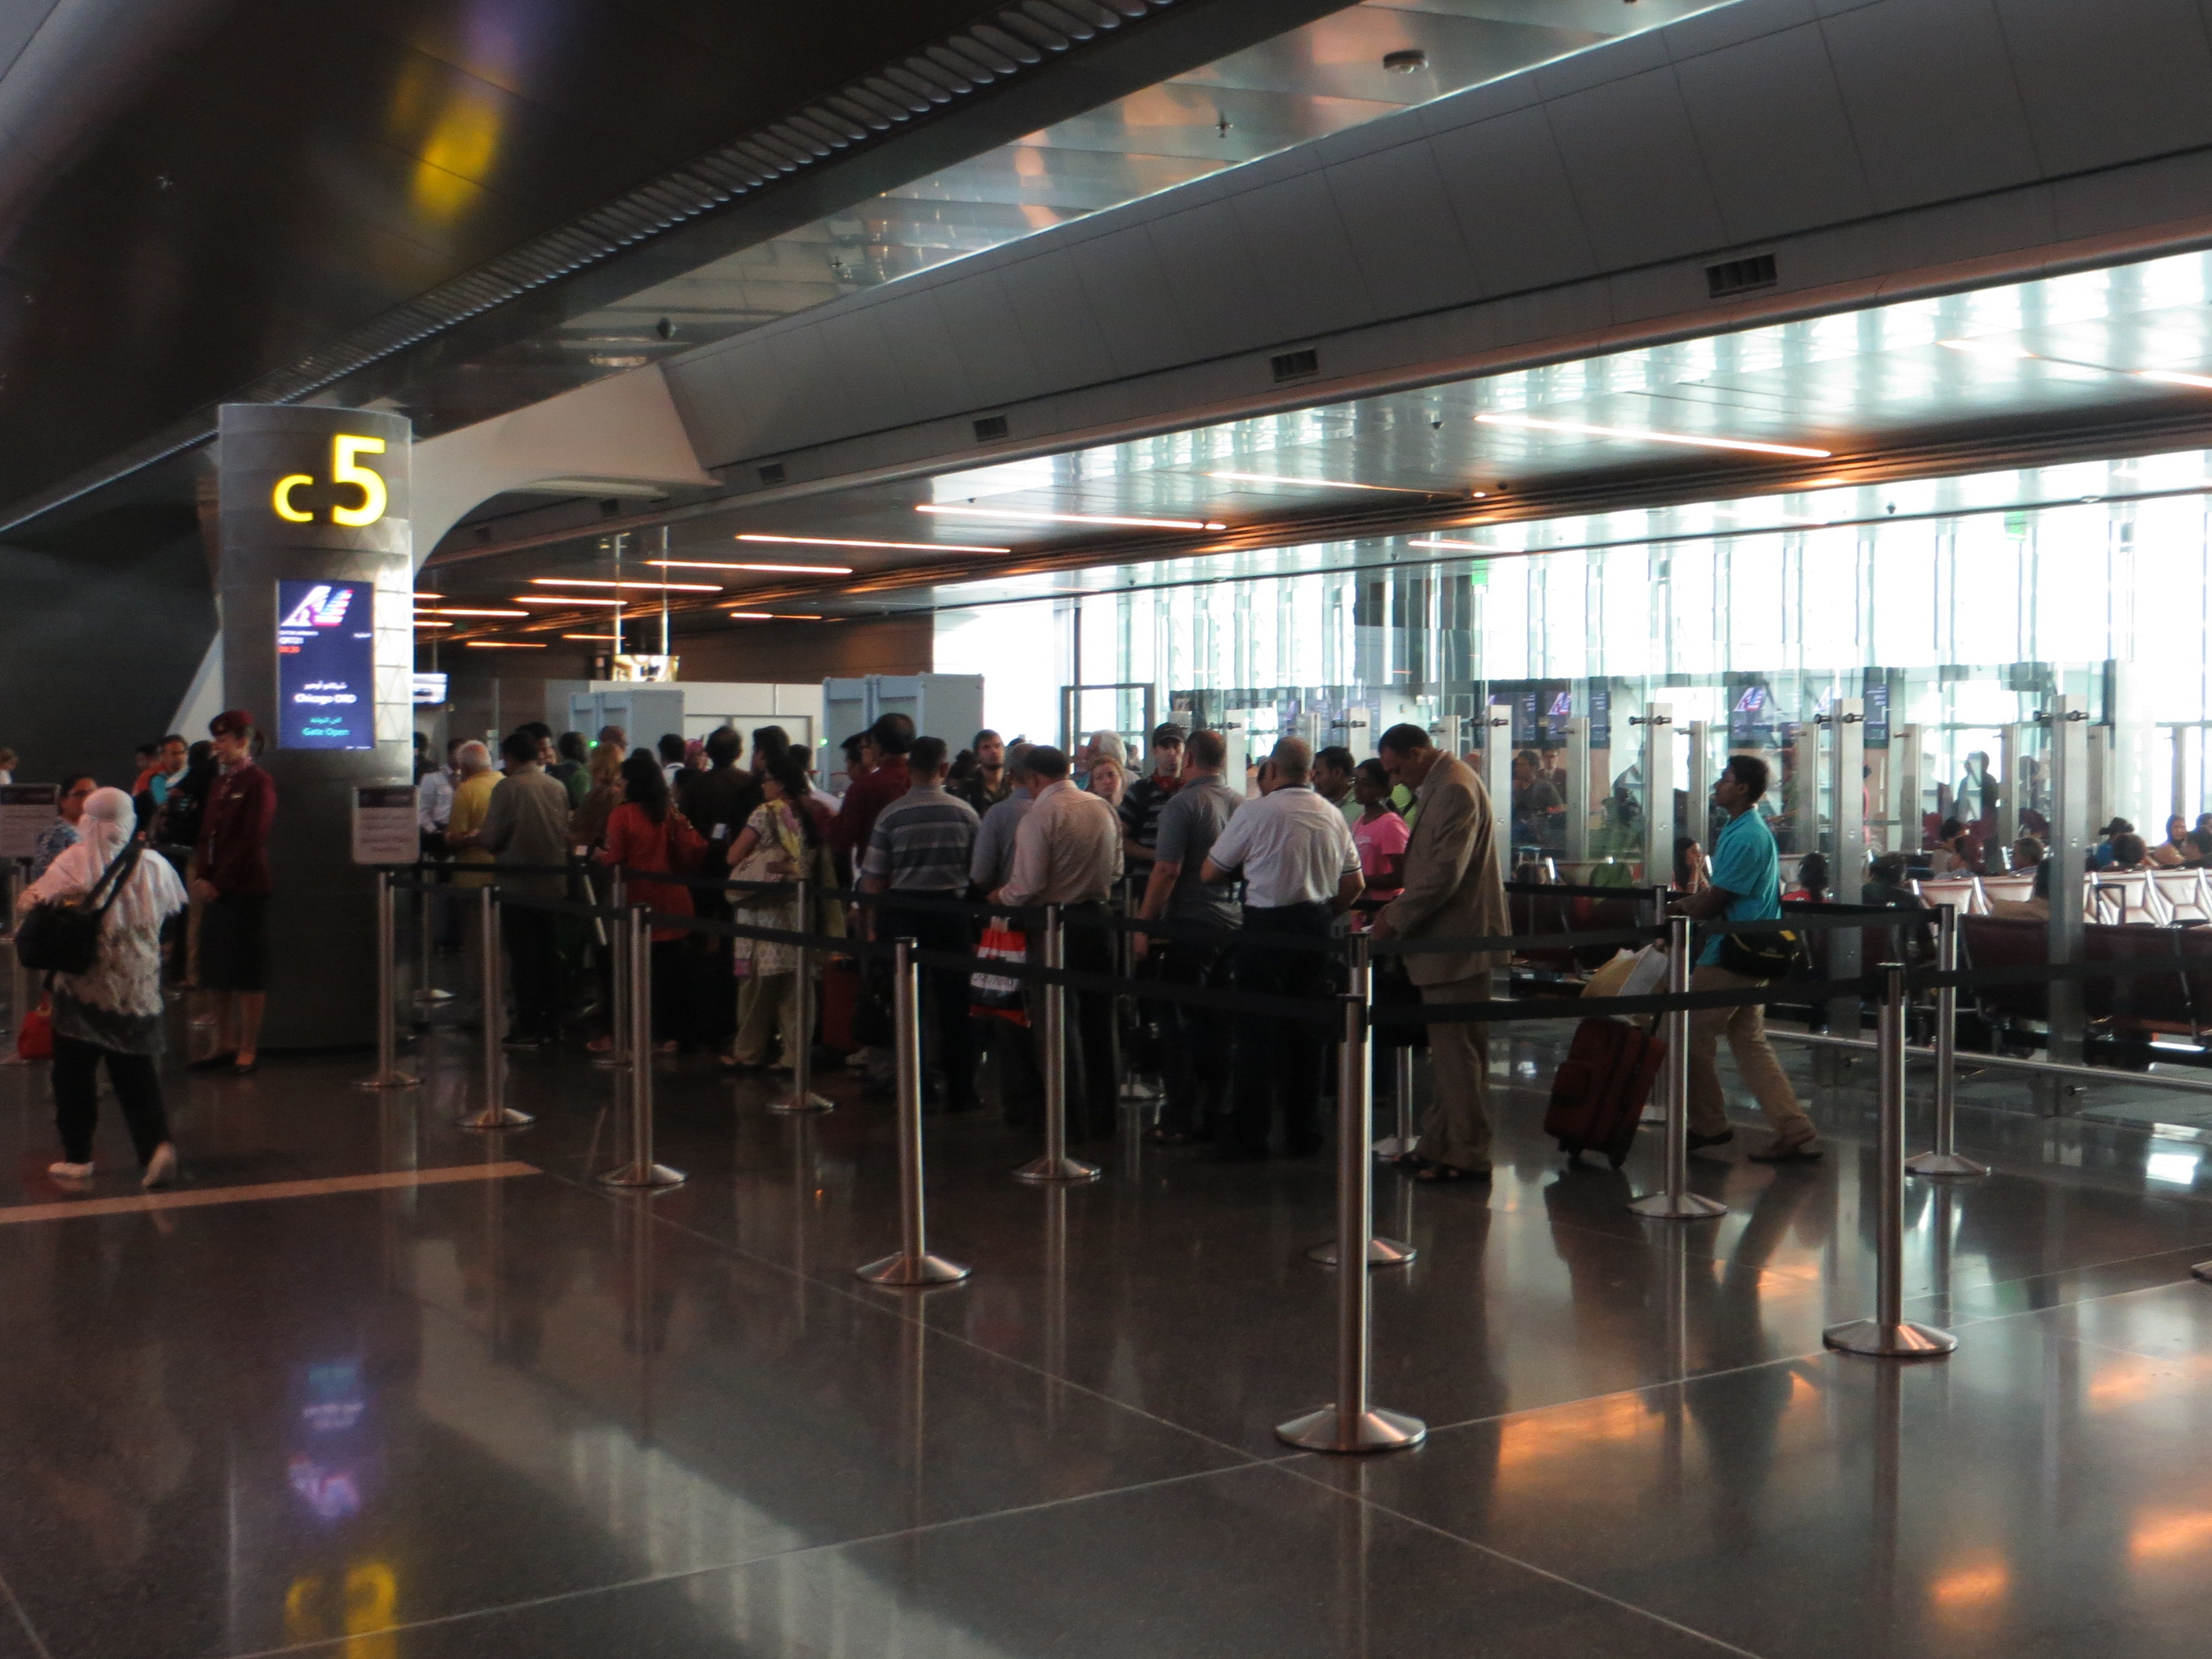 File:Gate C5 at Hamad Airport, 07-2014.JPG - Wikimedia Commons